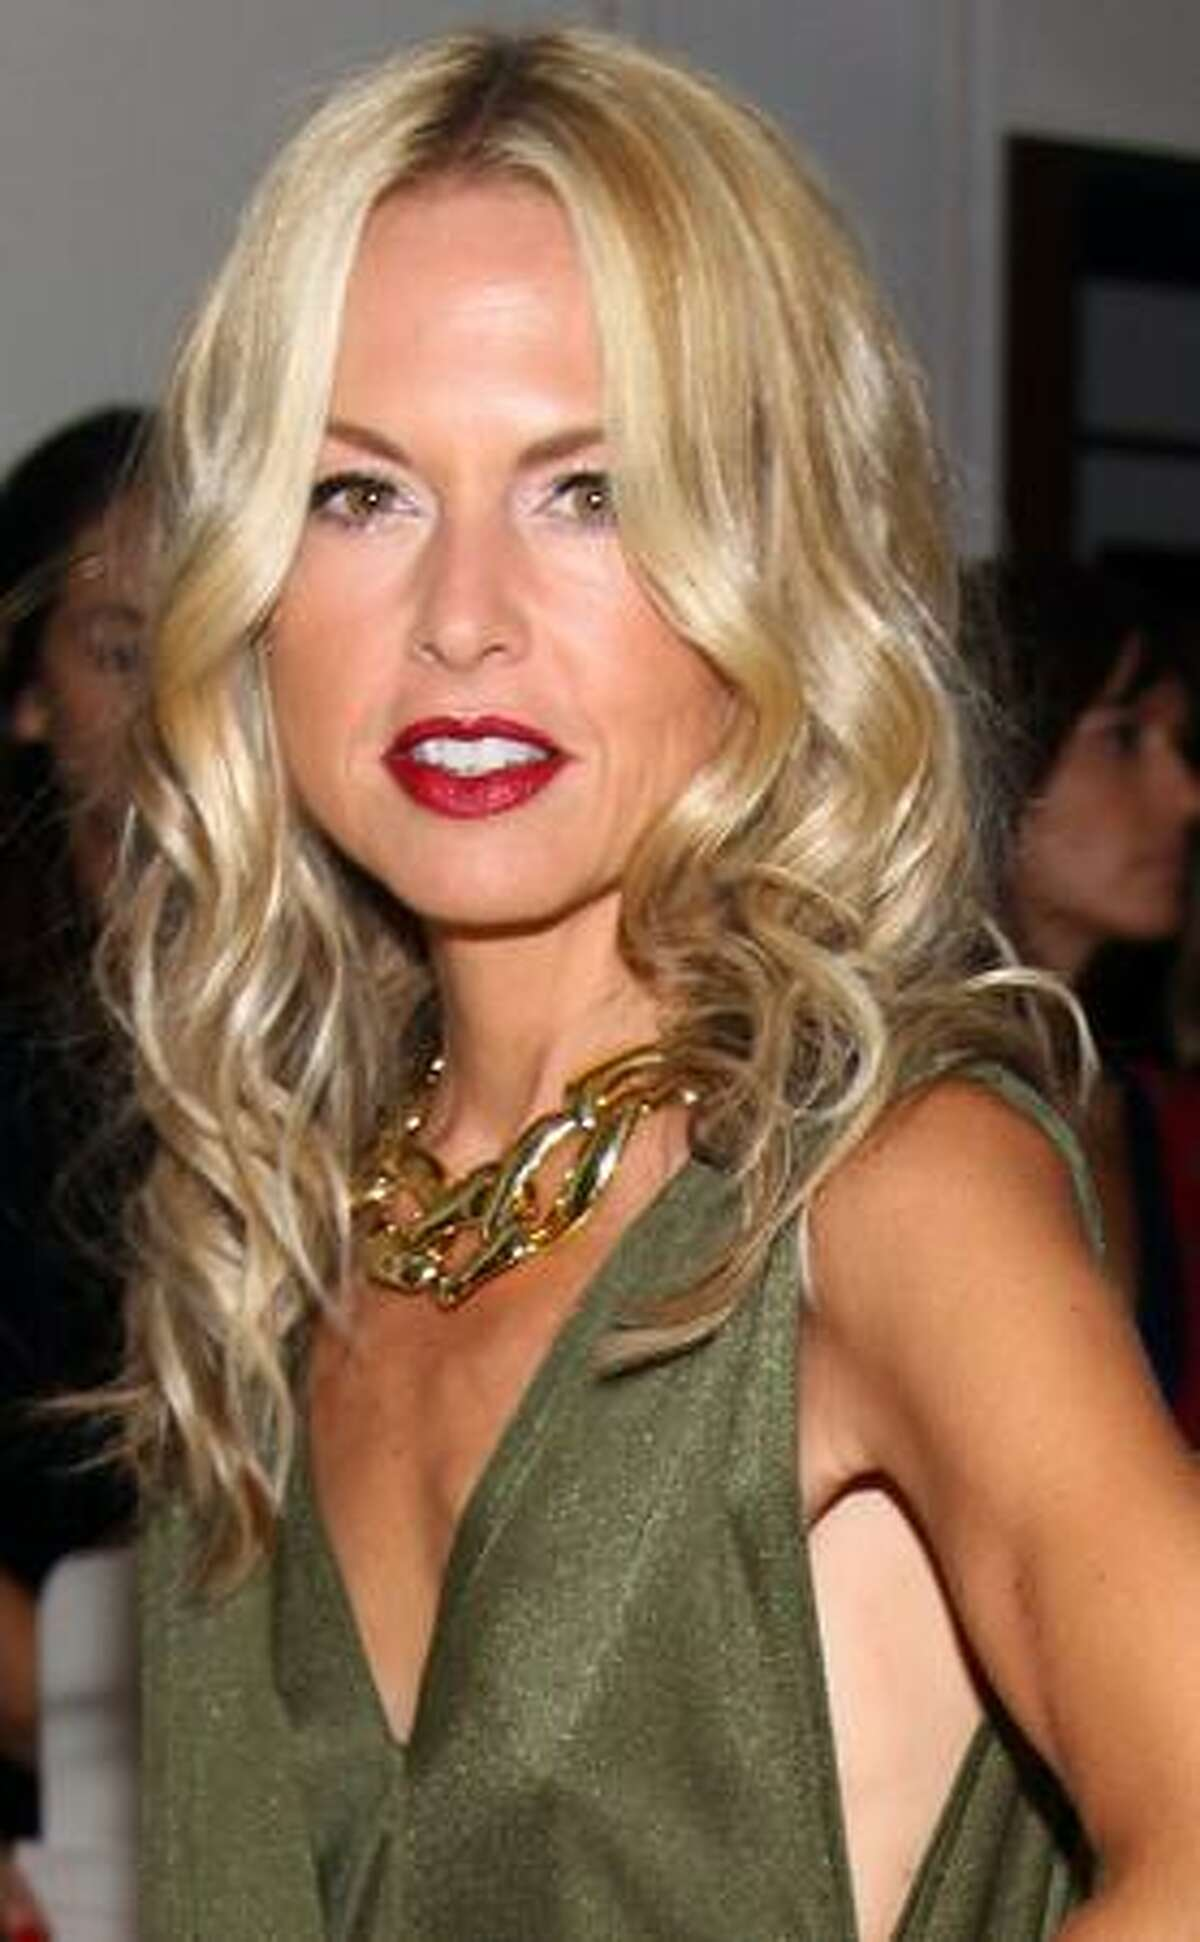 Rachel Zoe, one of the hottest designers in the fashion world, looks like she's trying to emulate the models she designs clothes for.